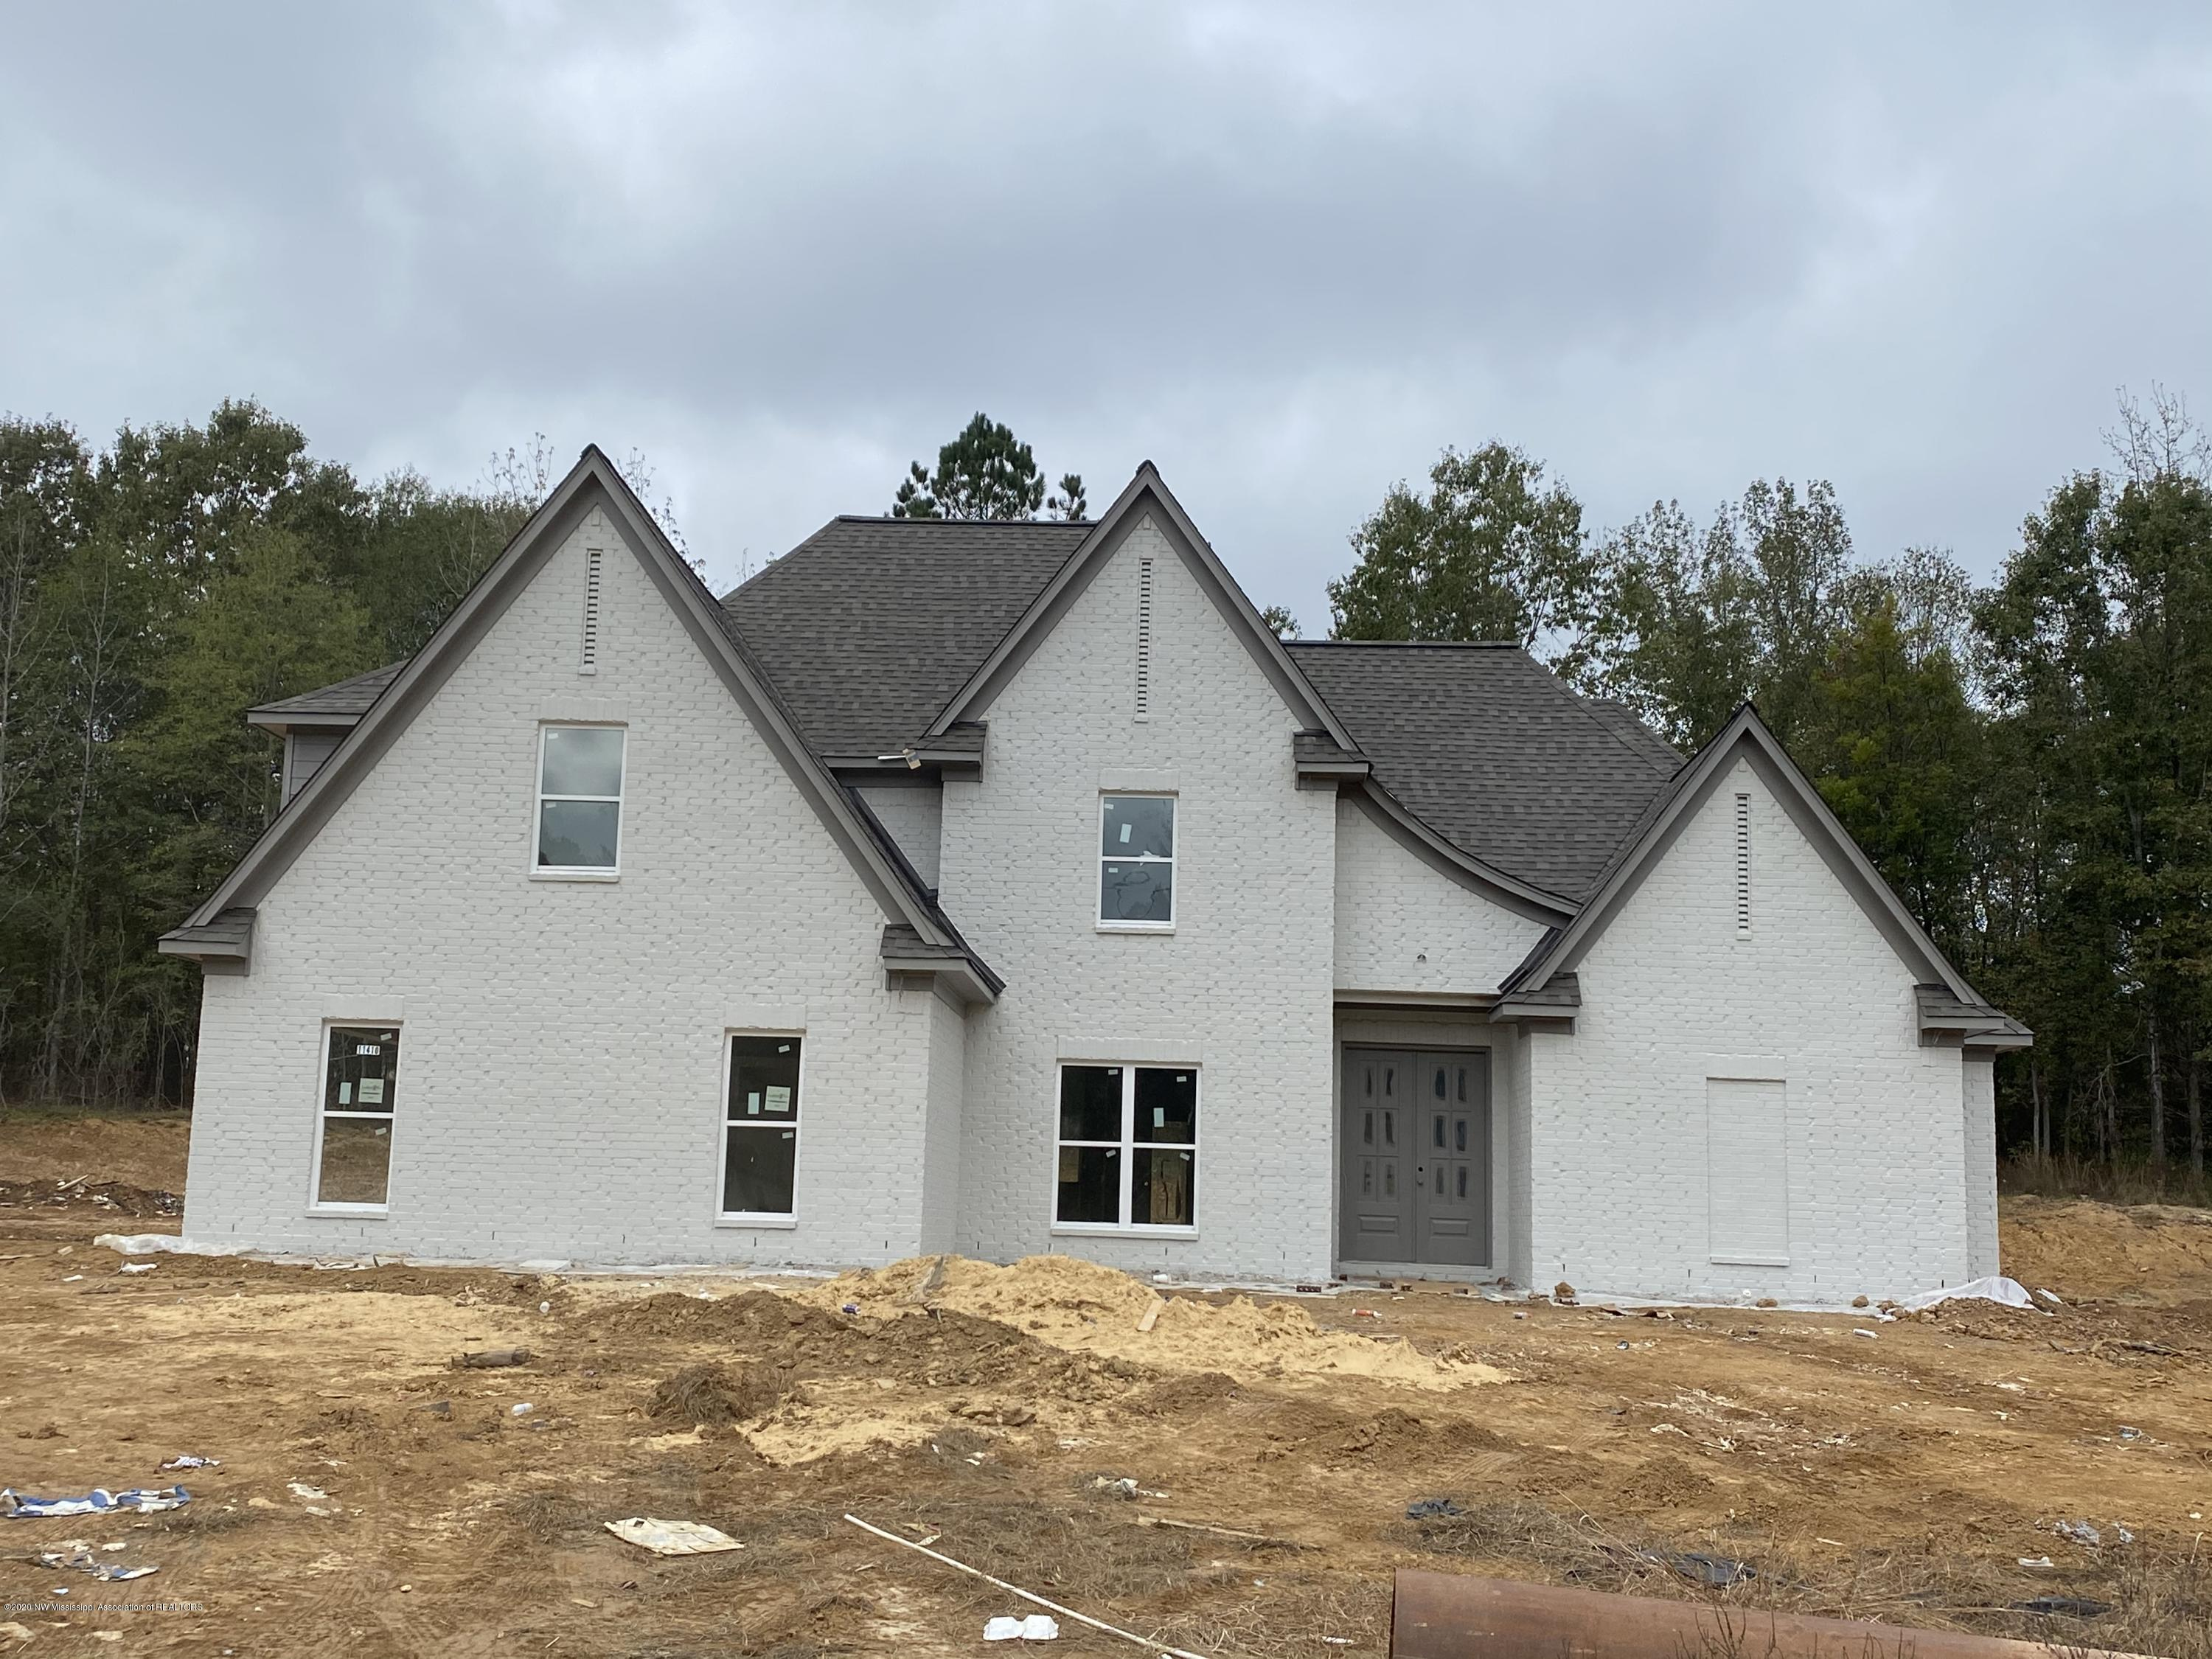 11410 Cedar Point Cove, DeSoto, Mississippi 38632, 4 Bedrooms Bedrooms, ,3 BathroomsBathrooms,Residential,For Sale,Cedar Point Cove,332340